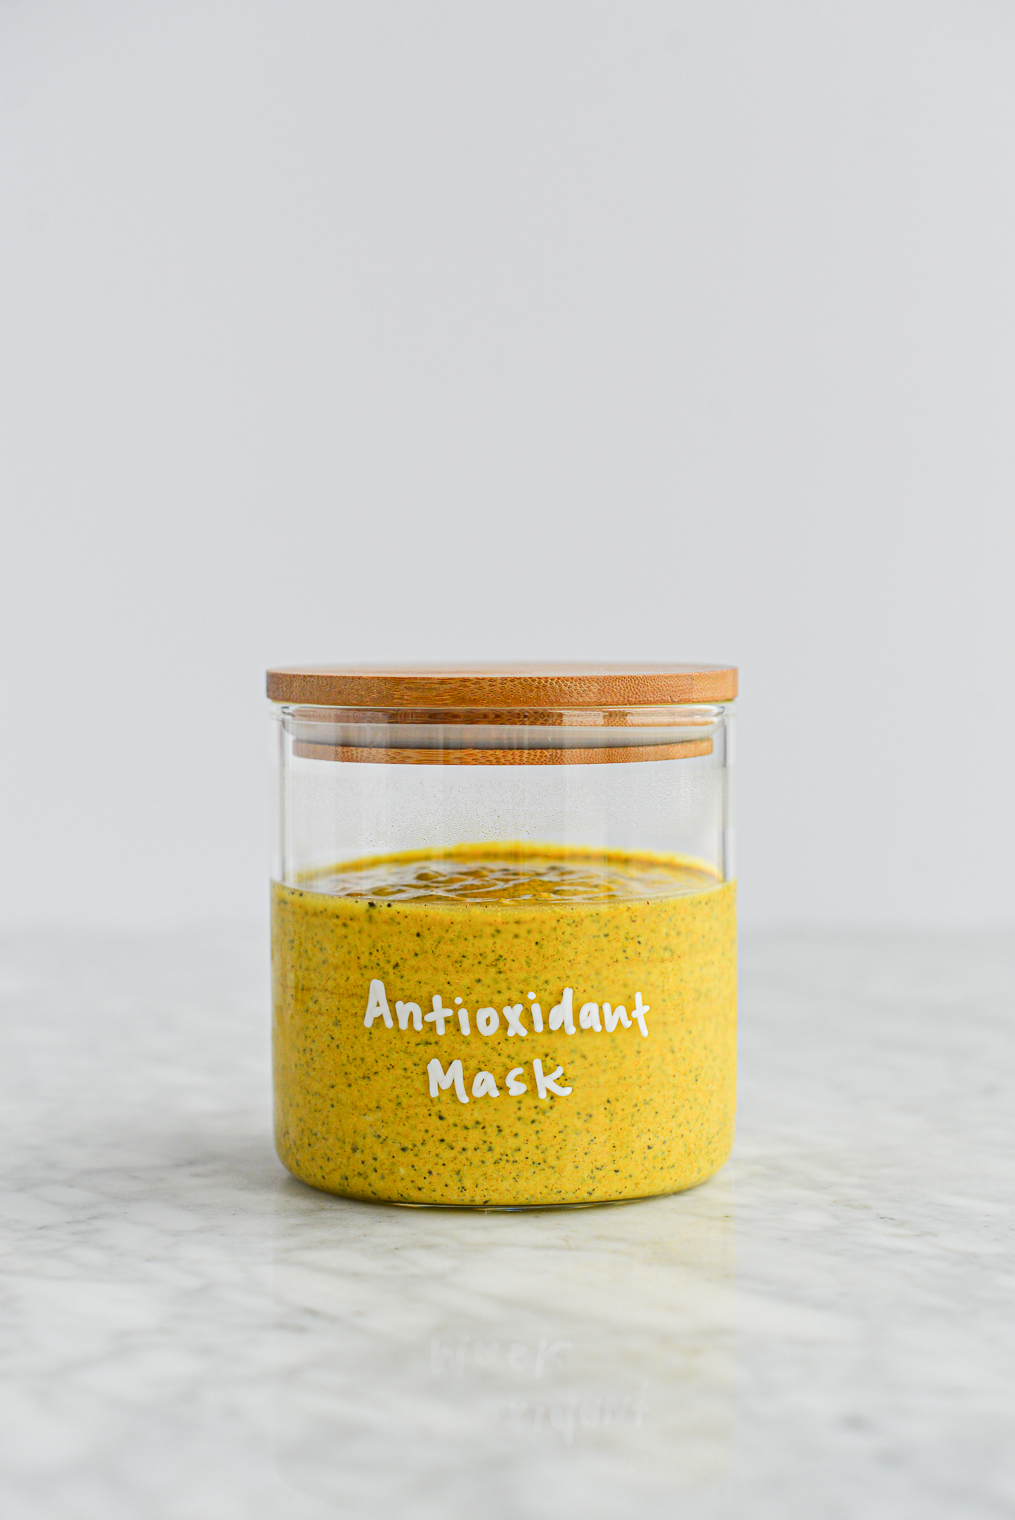 bright yellow turmeric and yogurt face mask in a glass jar with a wooden lid with the words 'antioxidant mask' written in white lettering